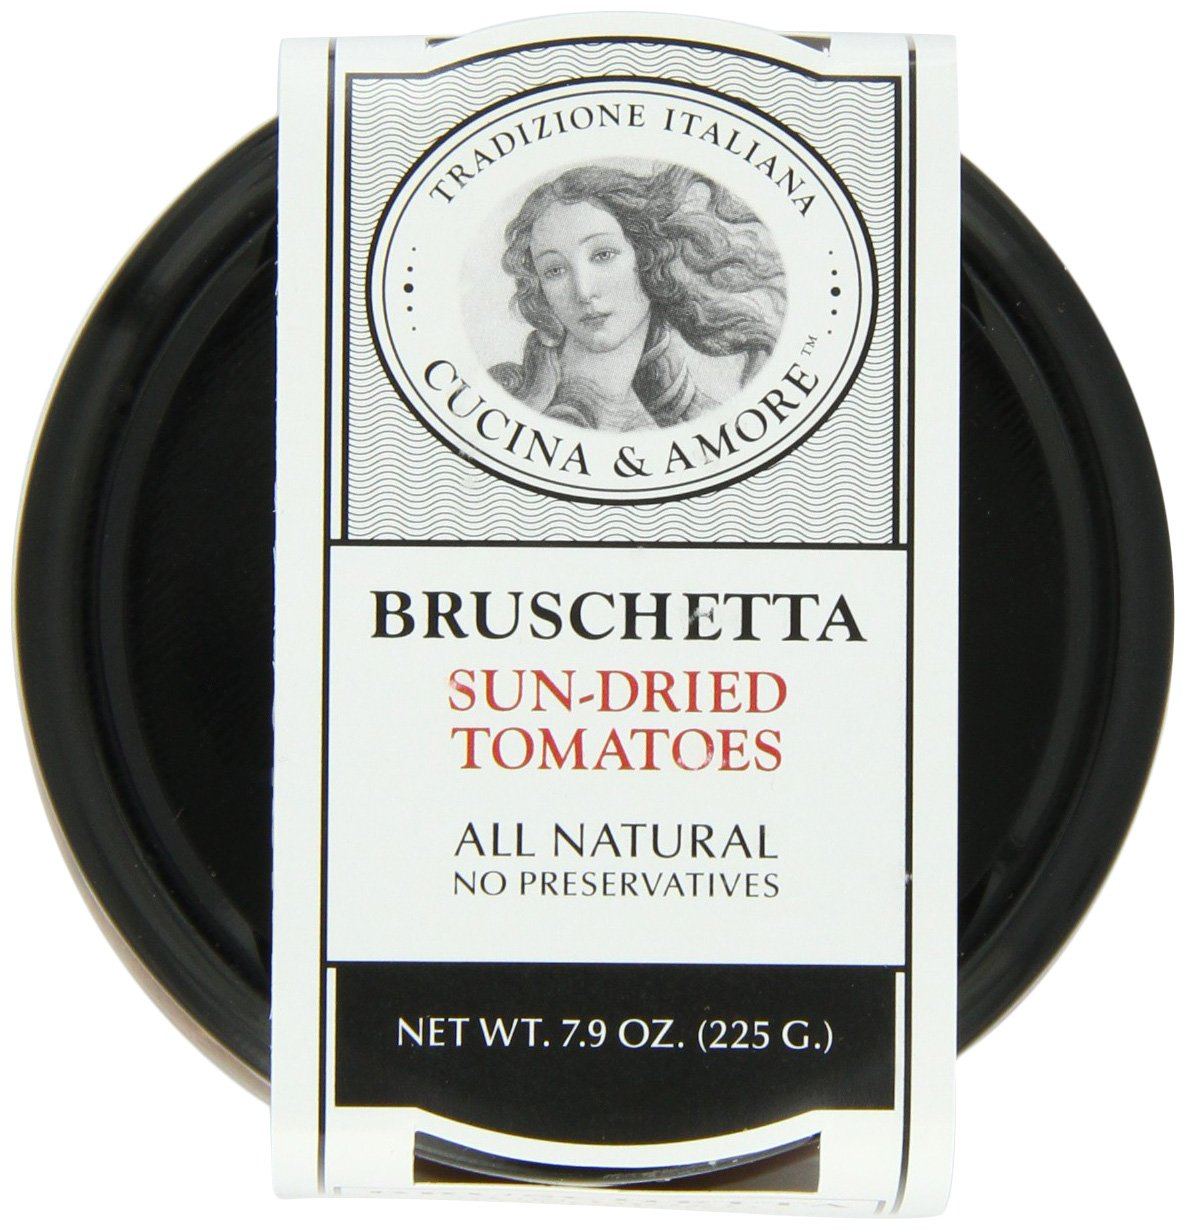 Cucina & Amore Bruschetta Sun-Dried Tomatoes, 7.9 Ounce by Cucina & Amore